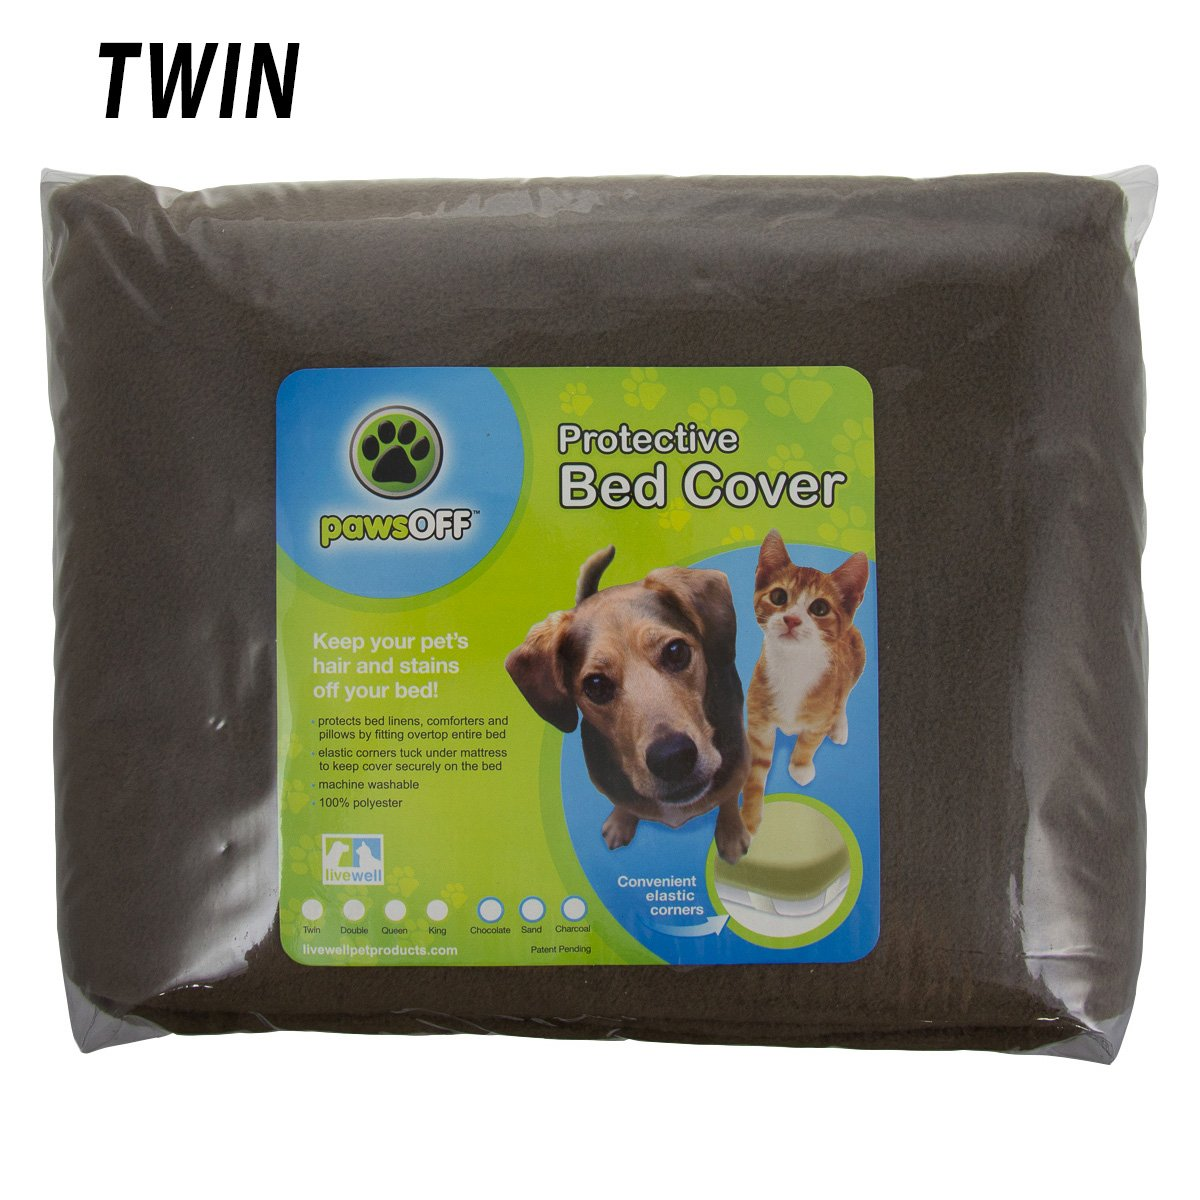 Paws Off Fleece Protective Bed Cover - Chocolate Color fits Twin Size Bed